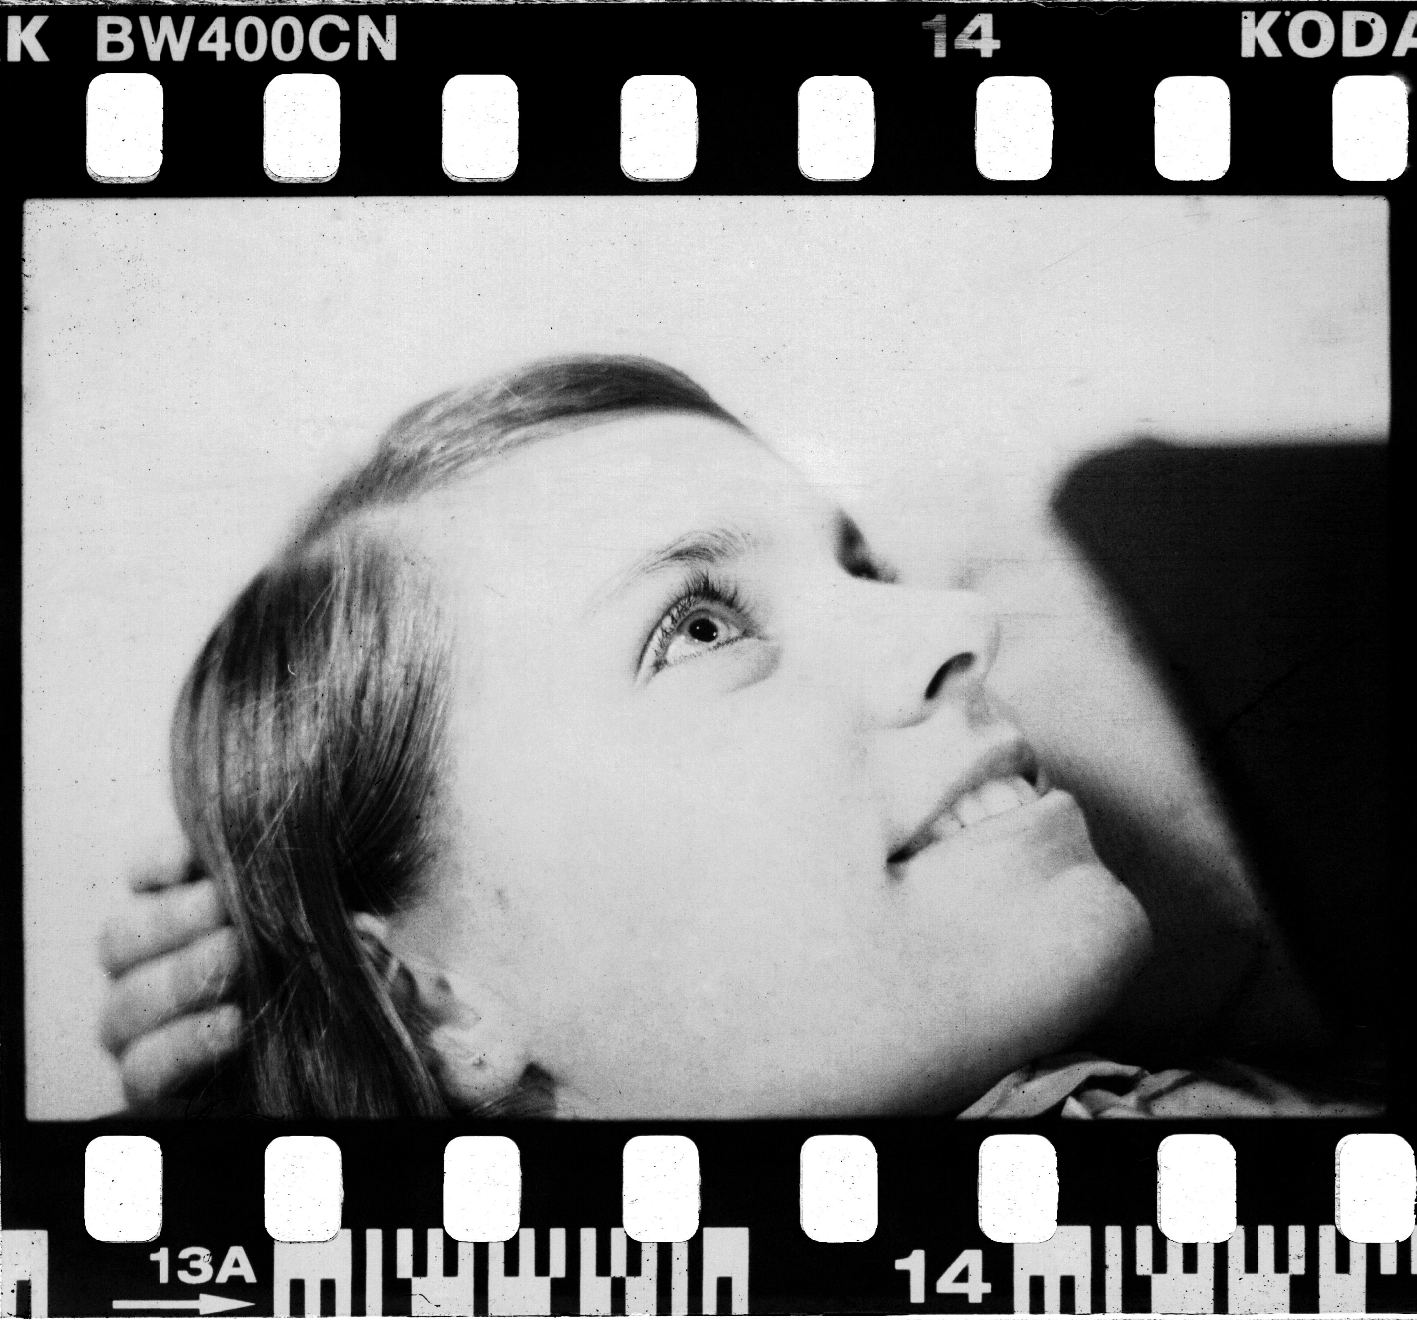 One more roll developed... 13